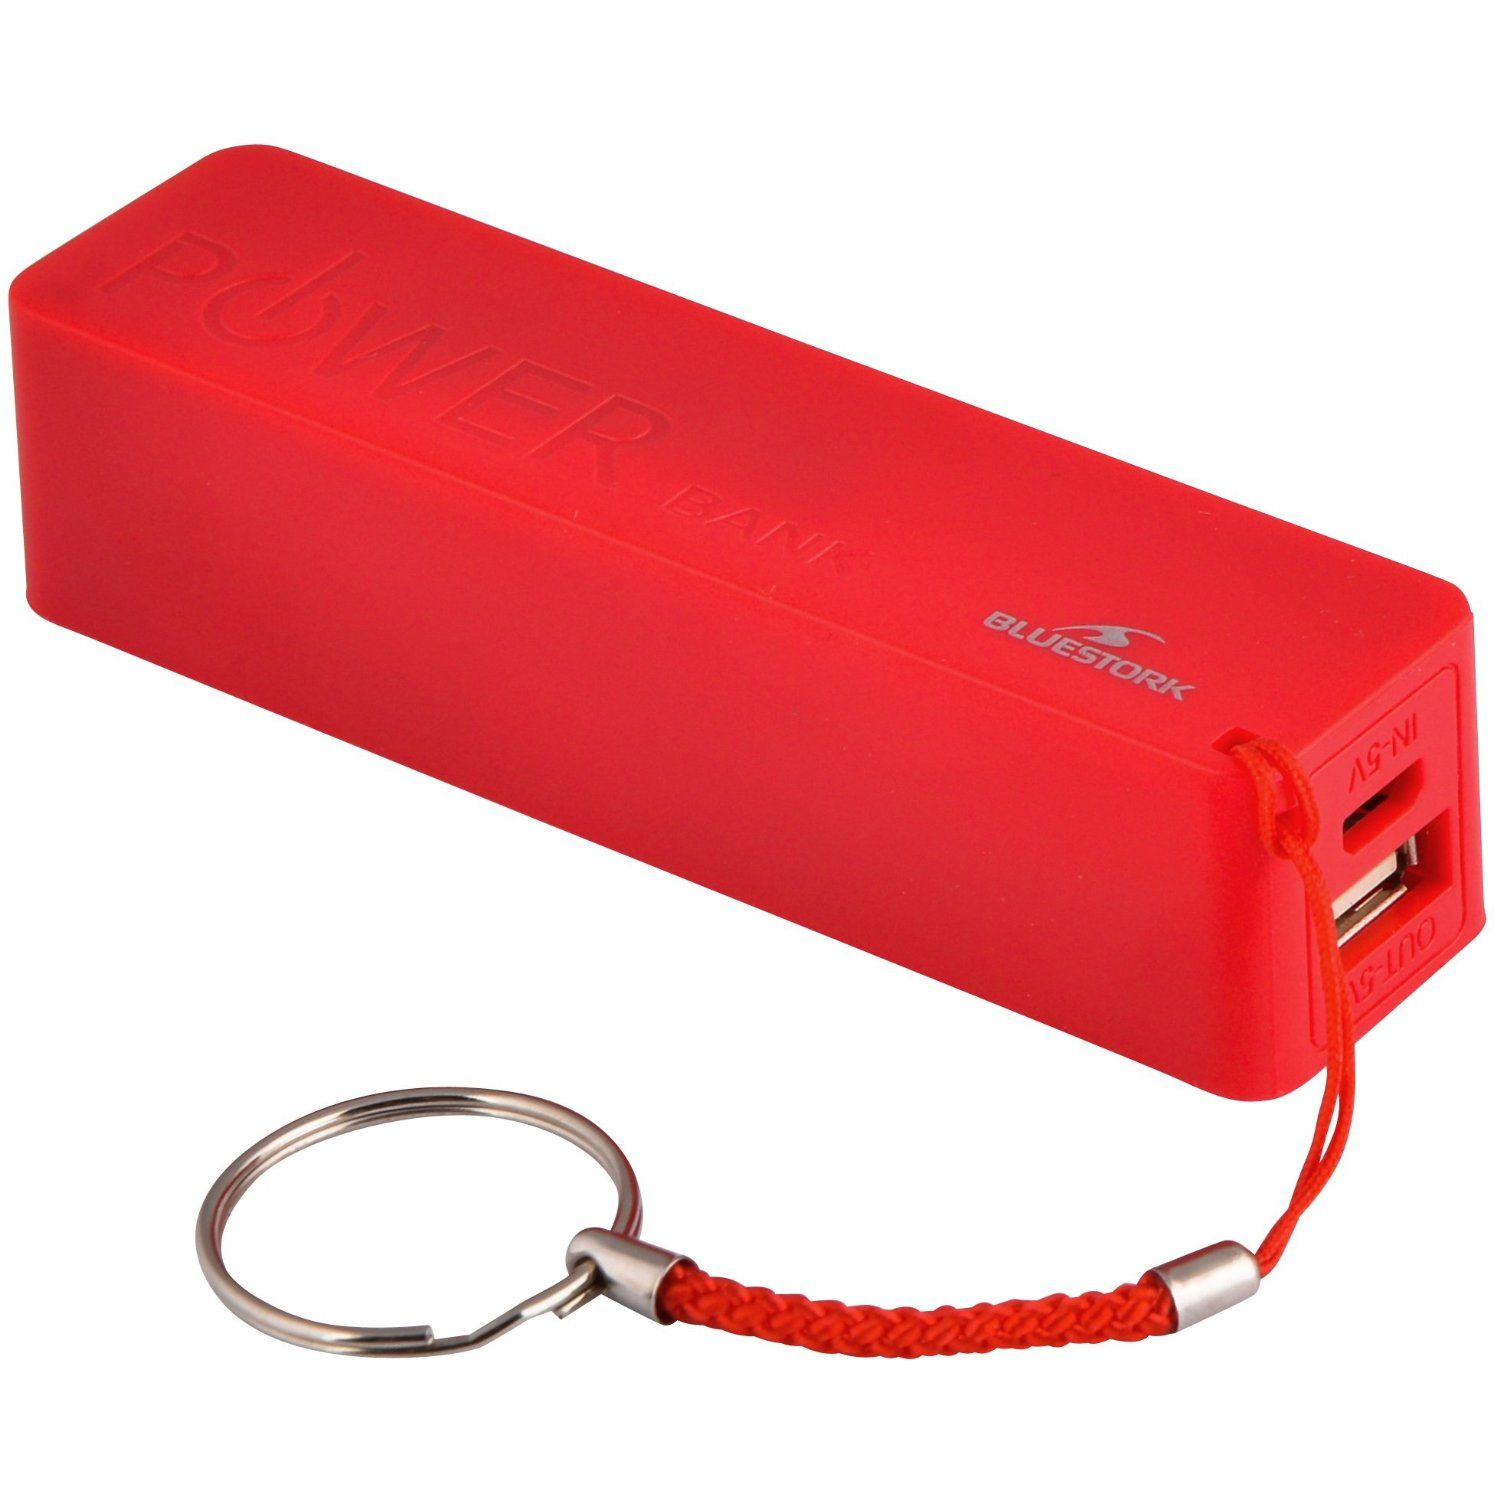 Ver POWER BANK Bluestork5V 2000mAh RED